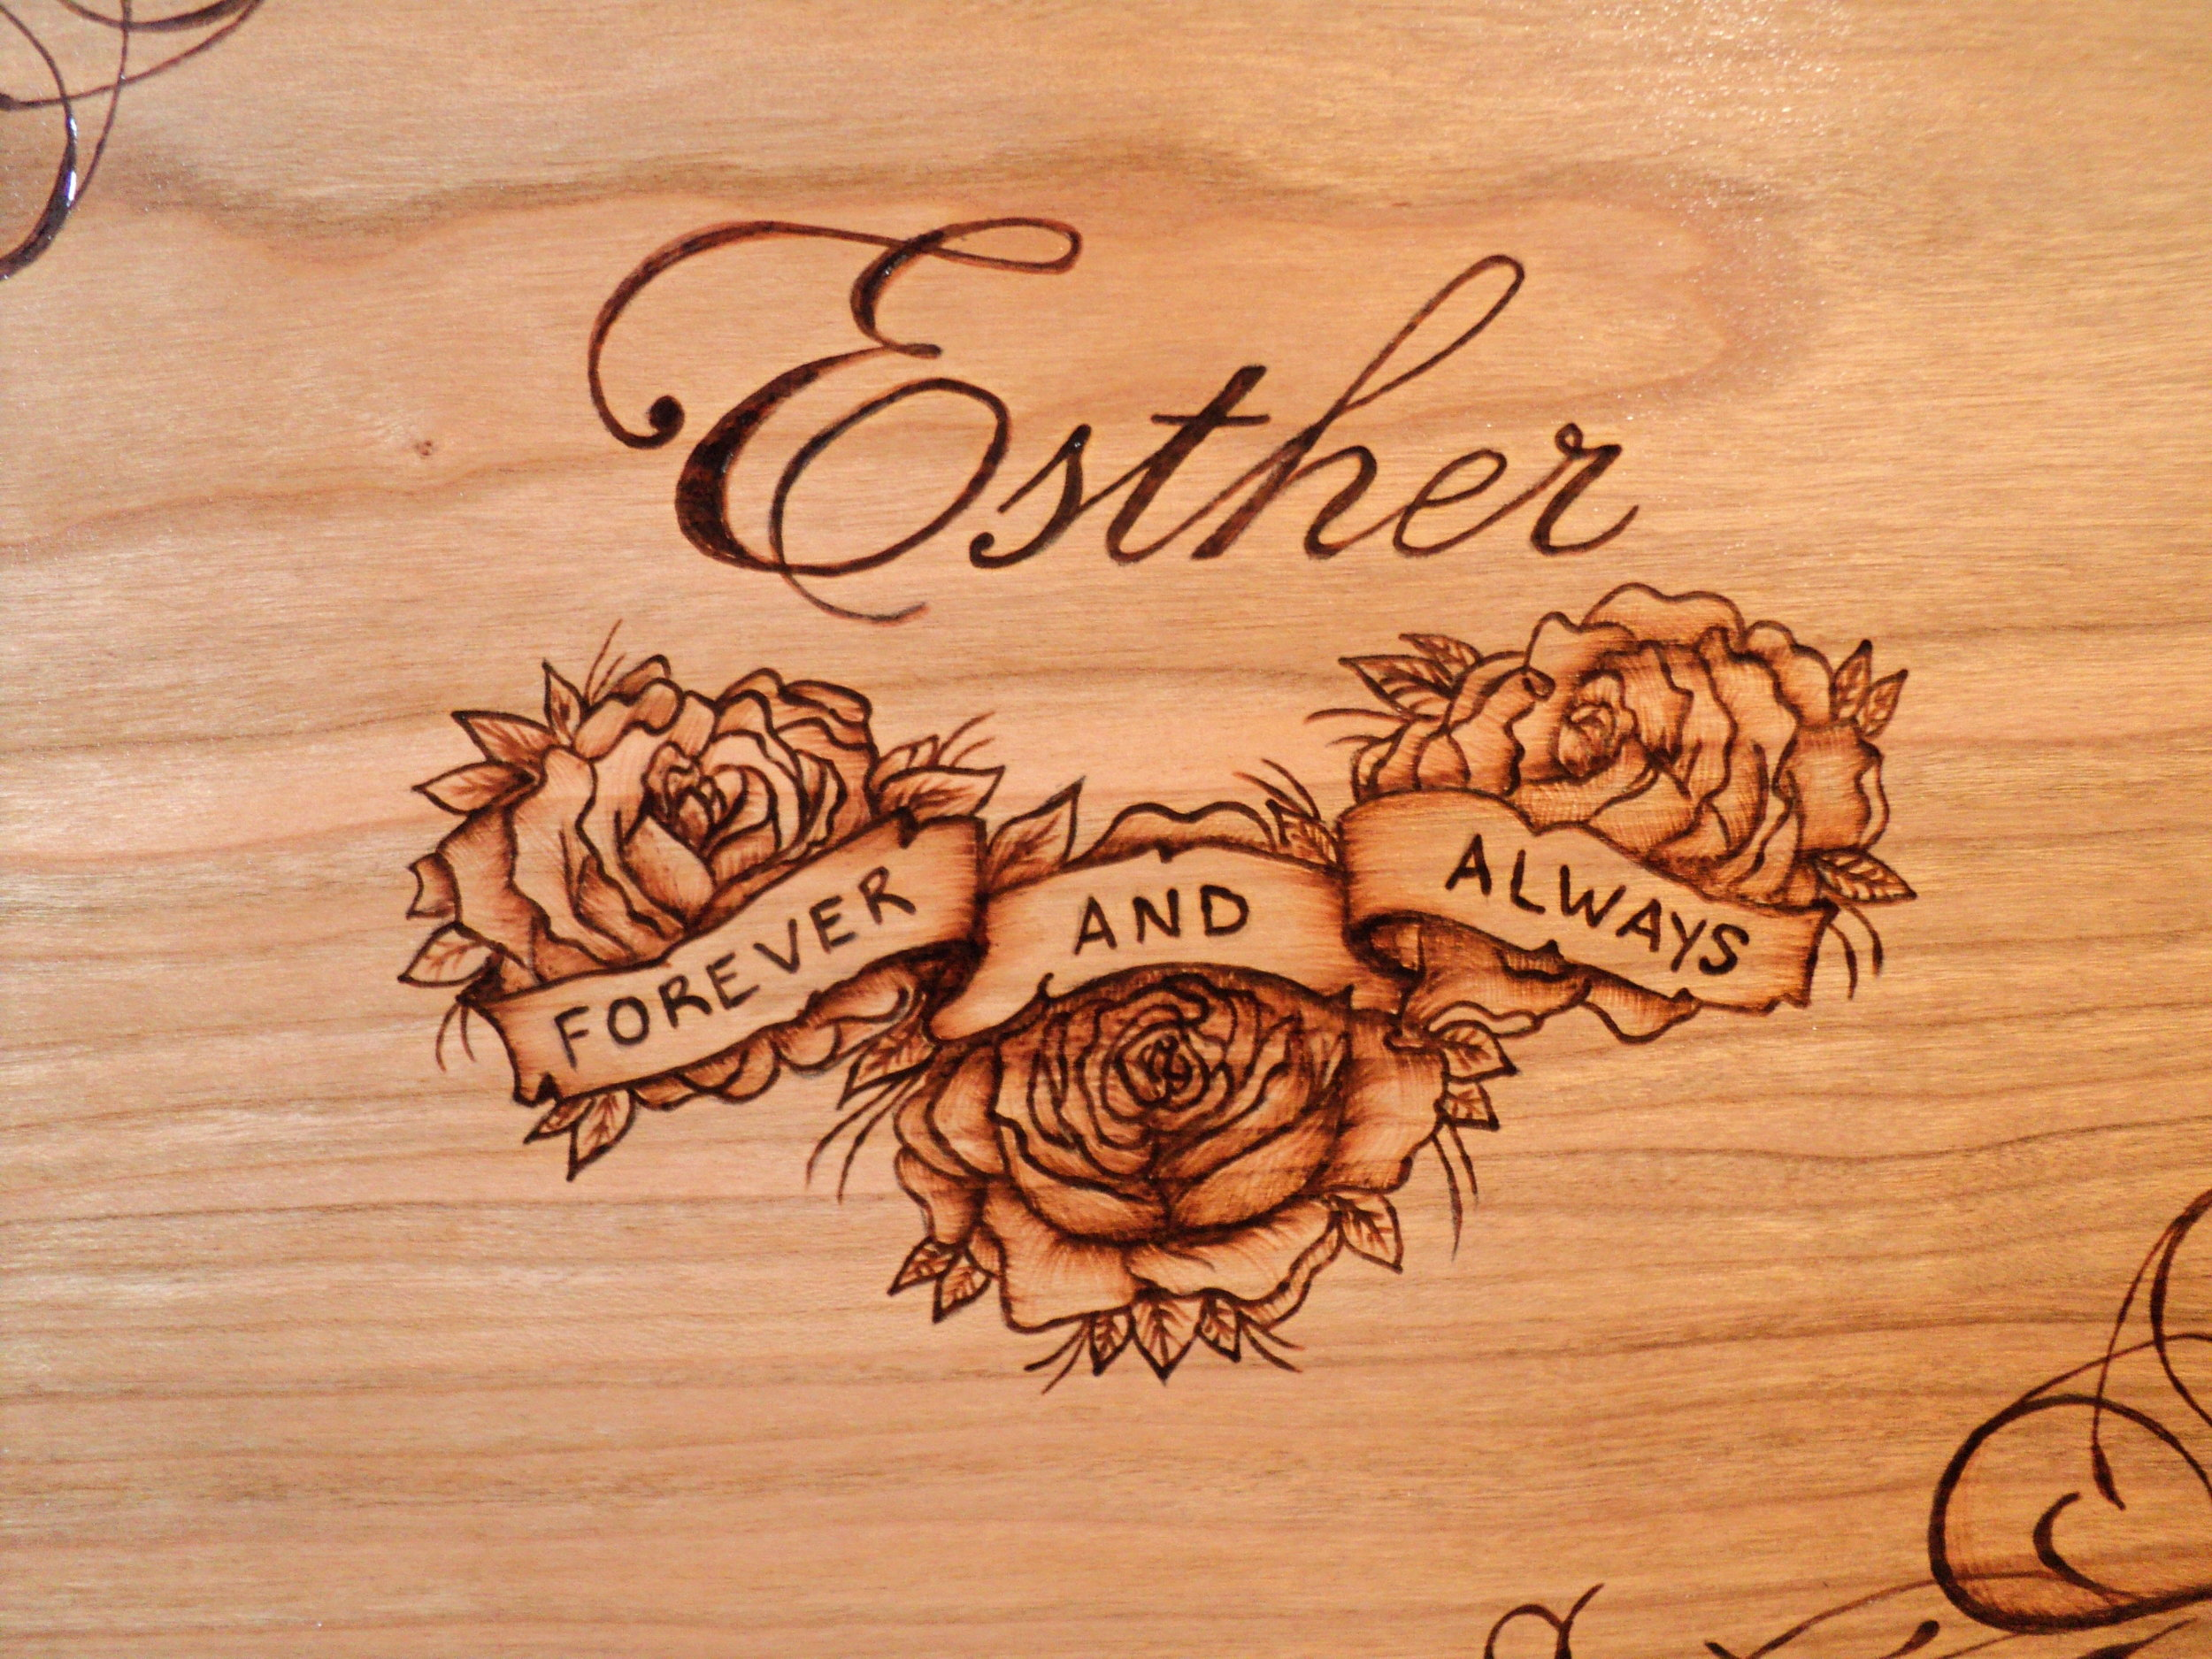 a custom order - makes any design completely yours. Add a name or an important date, a song lyric or poem that holds special meaning. A quote meant to provide inspiration or a private joke to make you smile. You can personalize an already existing design or turn your original idea into a work of art. It's all up to you.